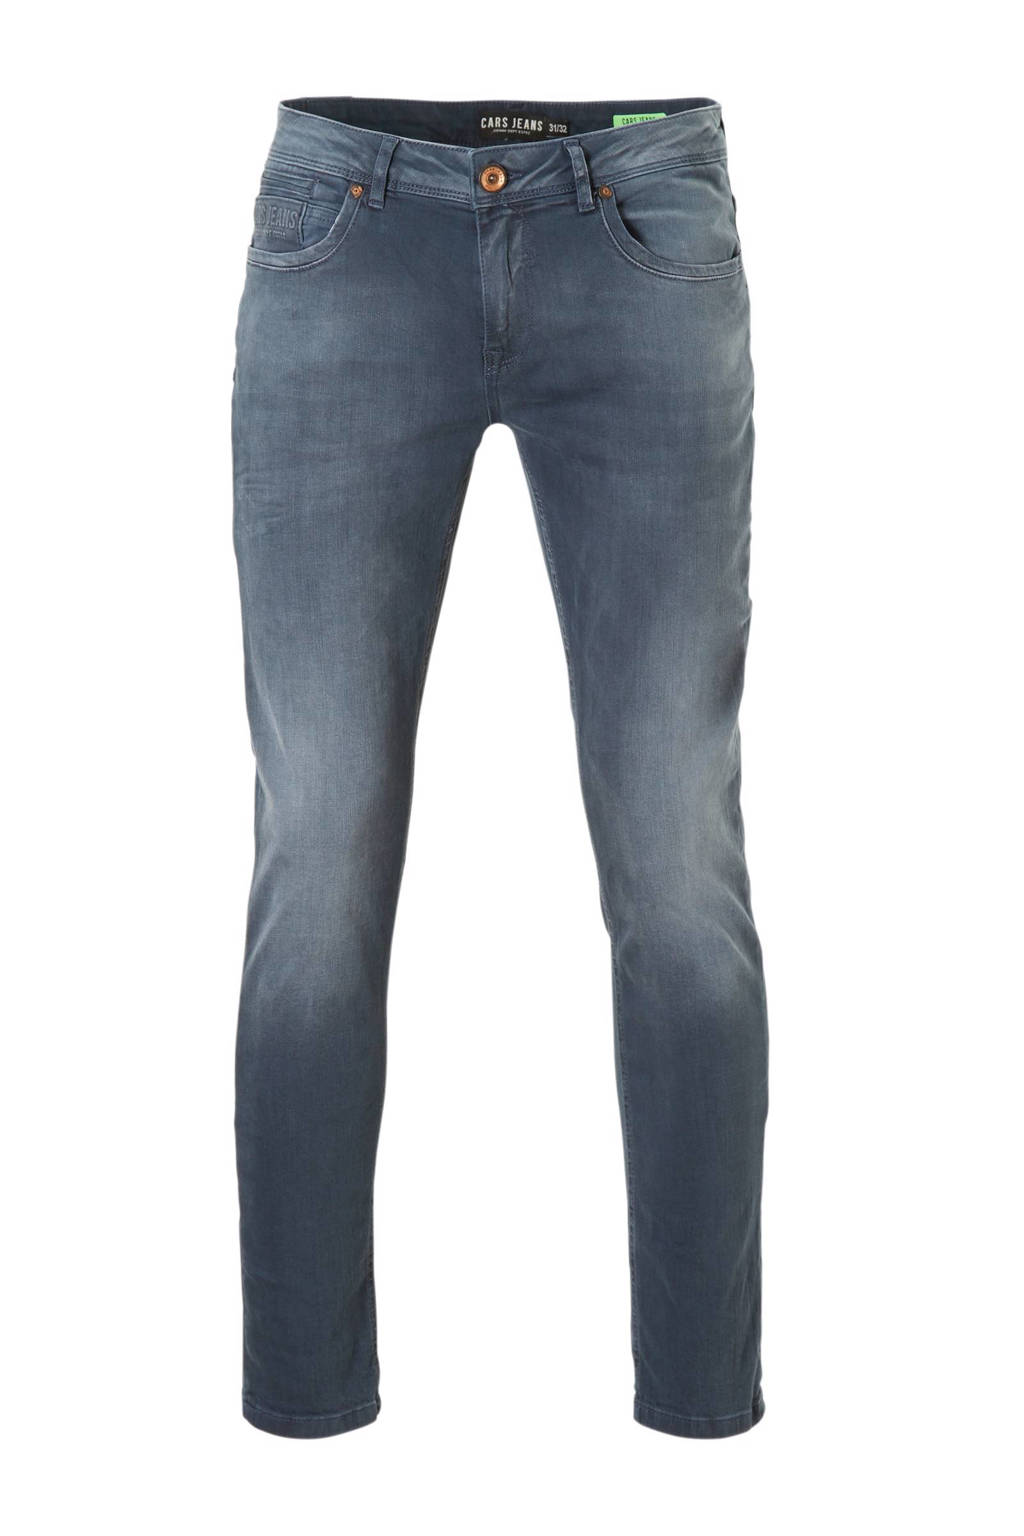 Cars slim fit jeans Blast, Dallas Blue